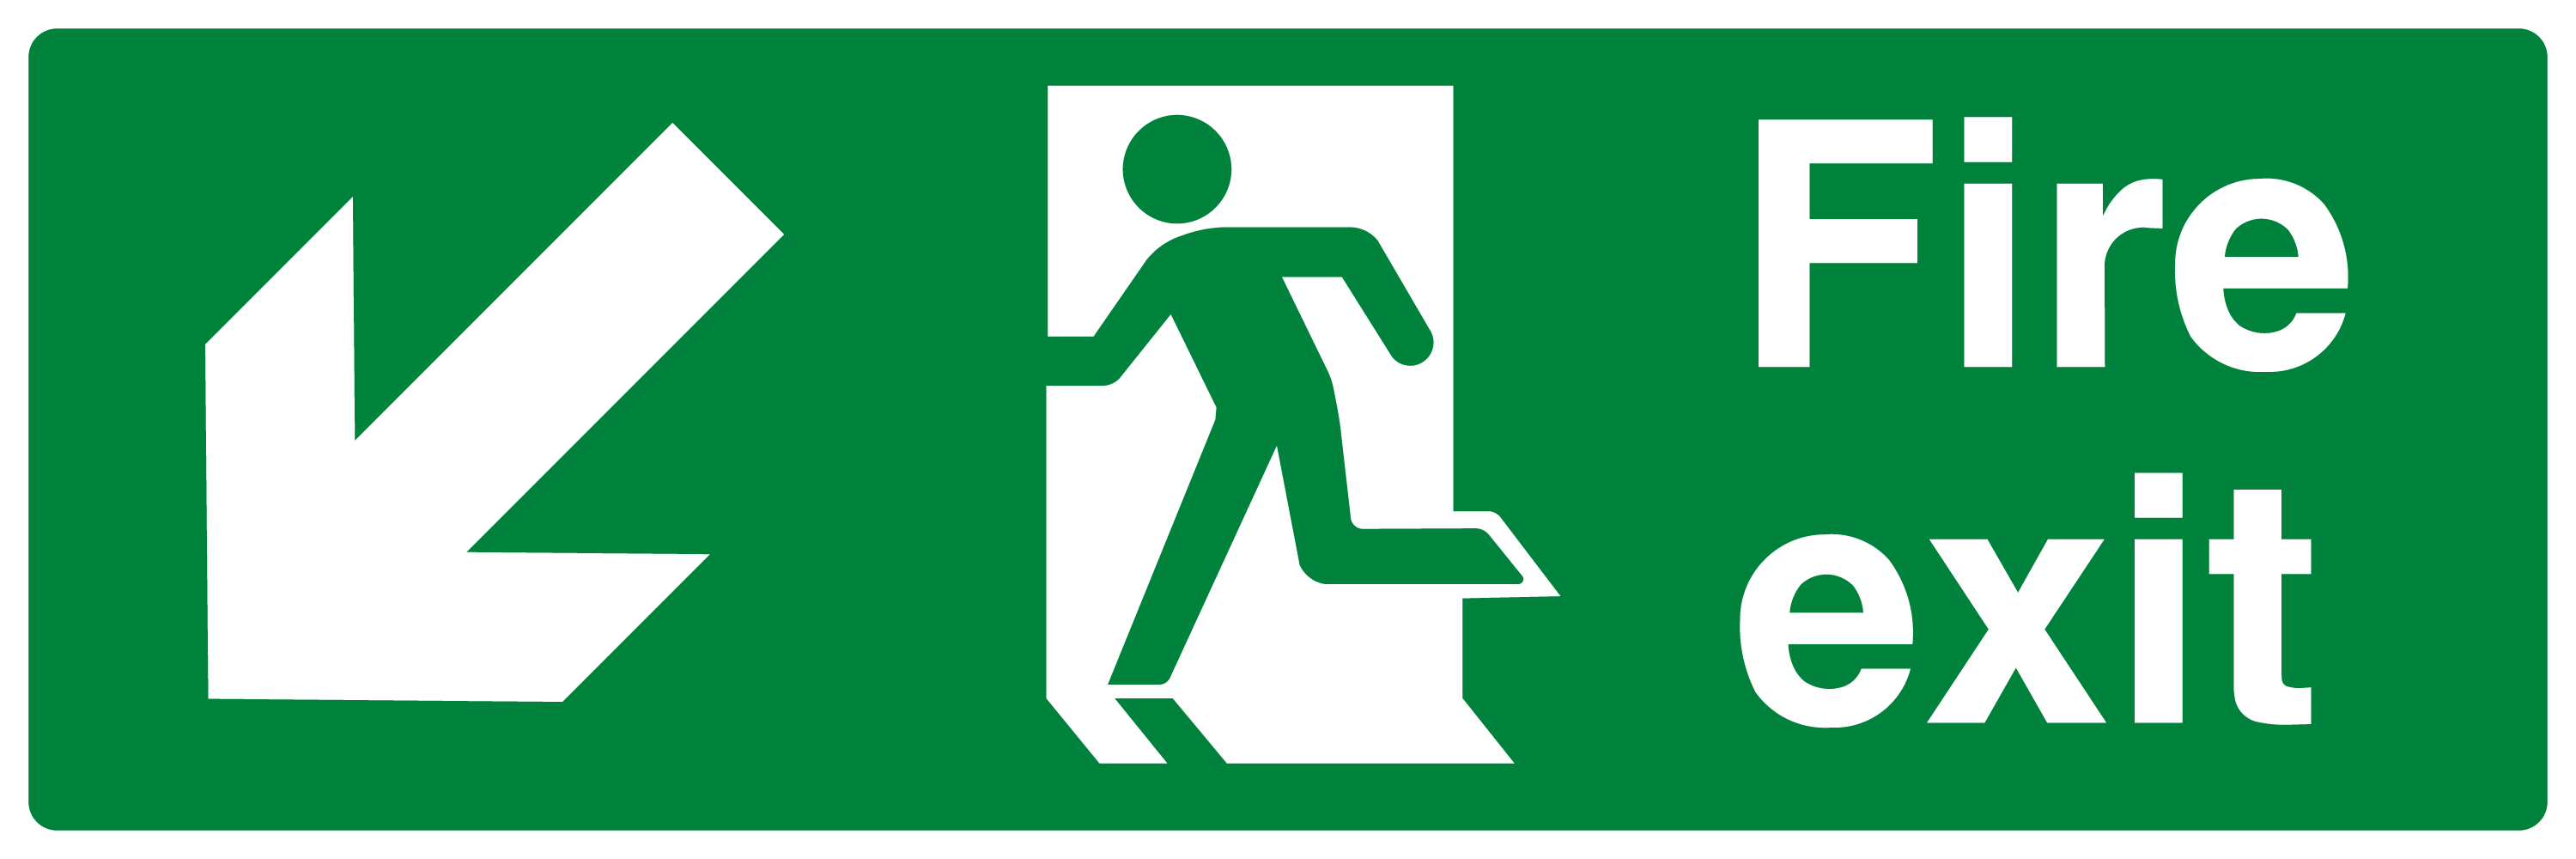 Fire Exit Running Man Arrow Down Left | High Quality Vector